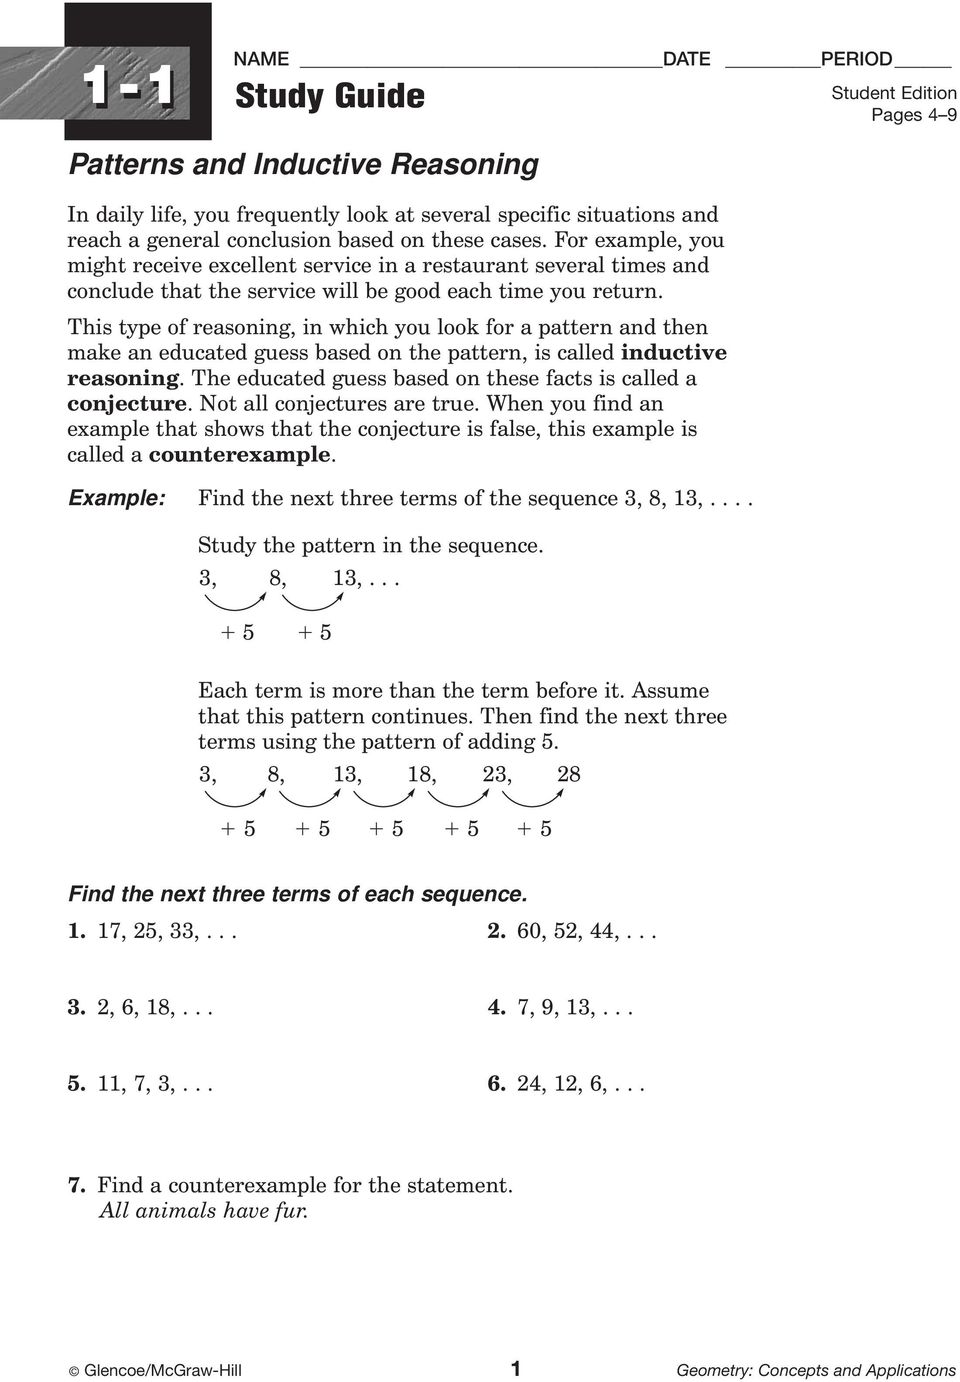 worksheet Inductive Reasoning Worksheet study guide workbook contents include 96 worksheets one for each this type of reasoning in which you look a pattern and then make an